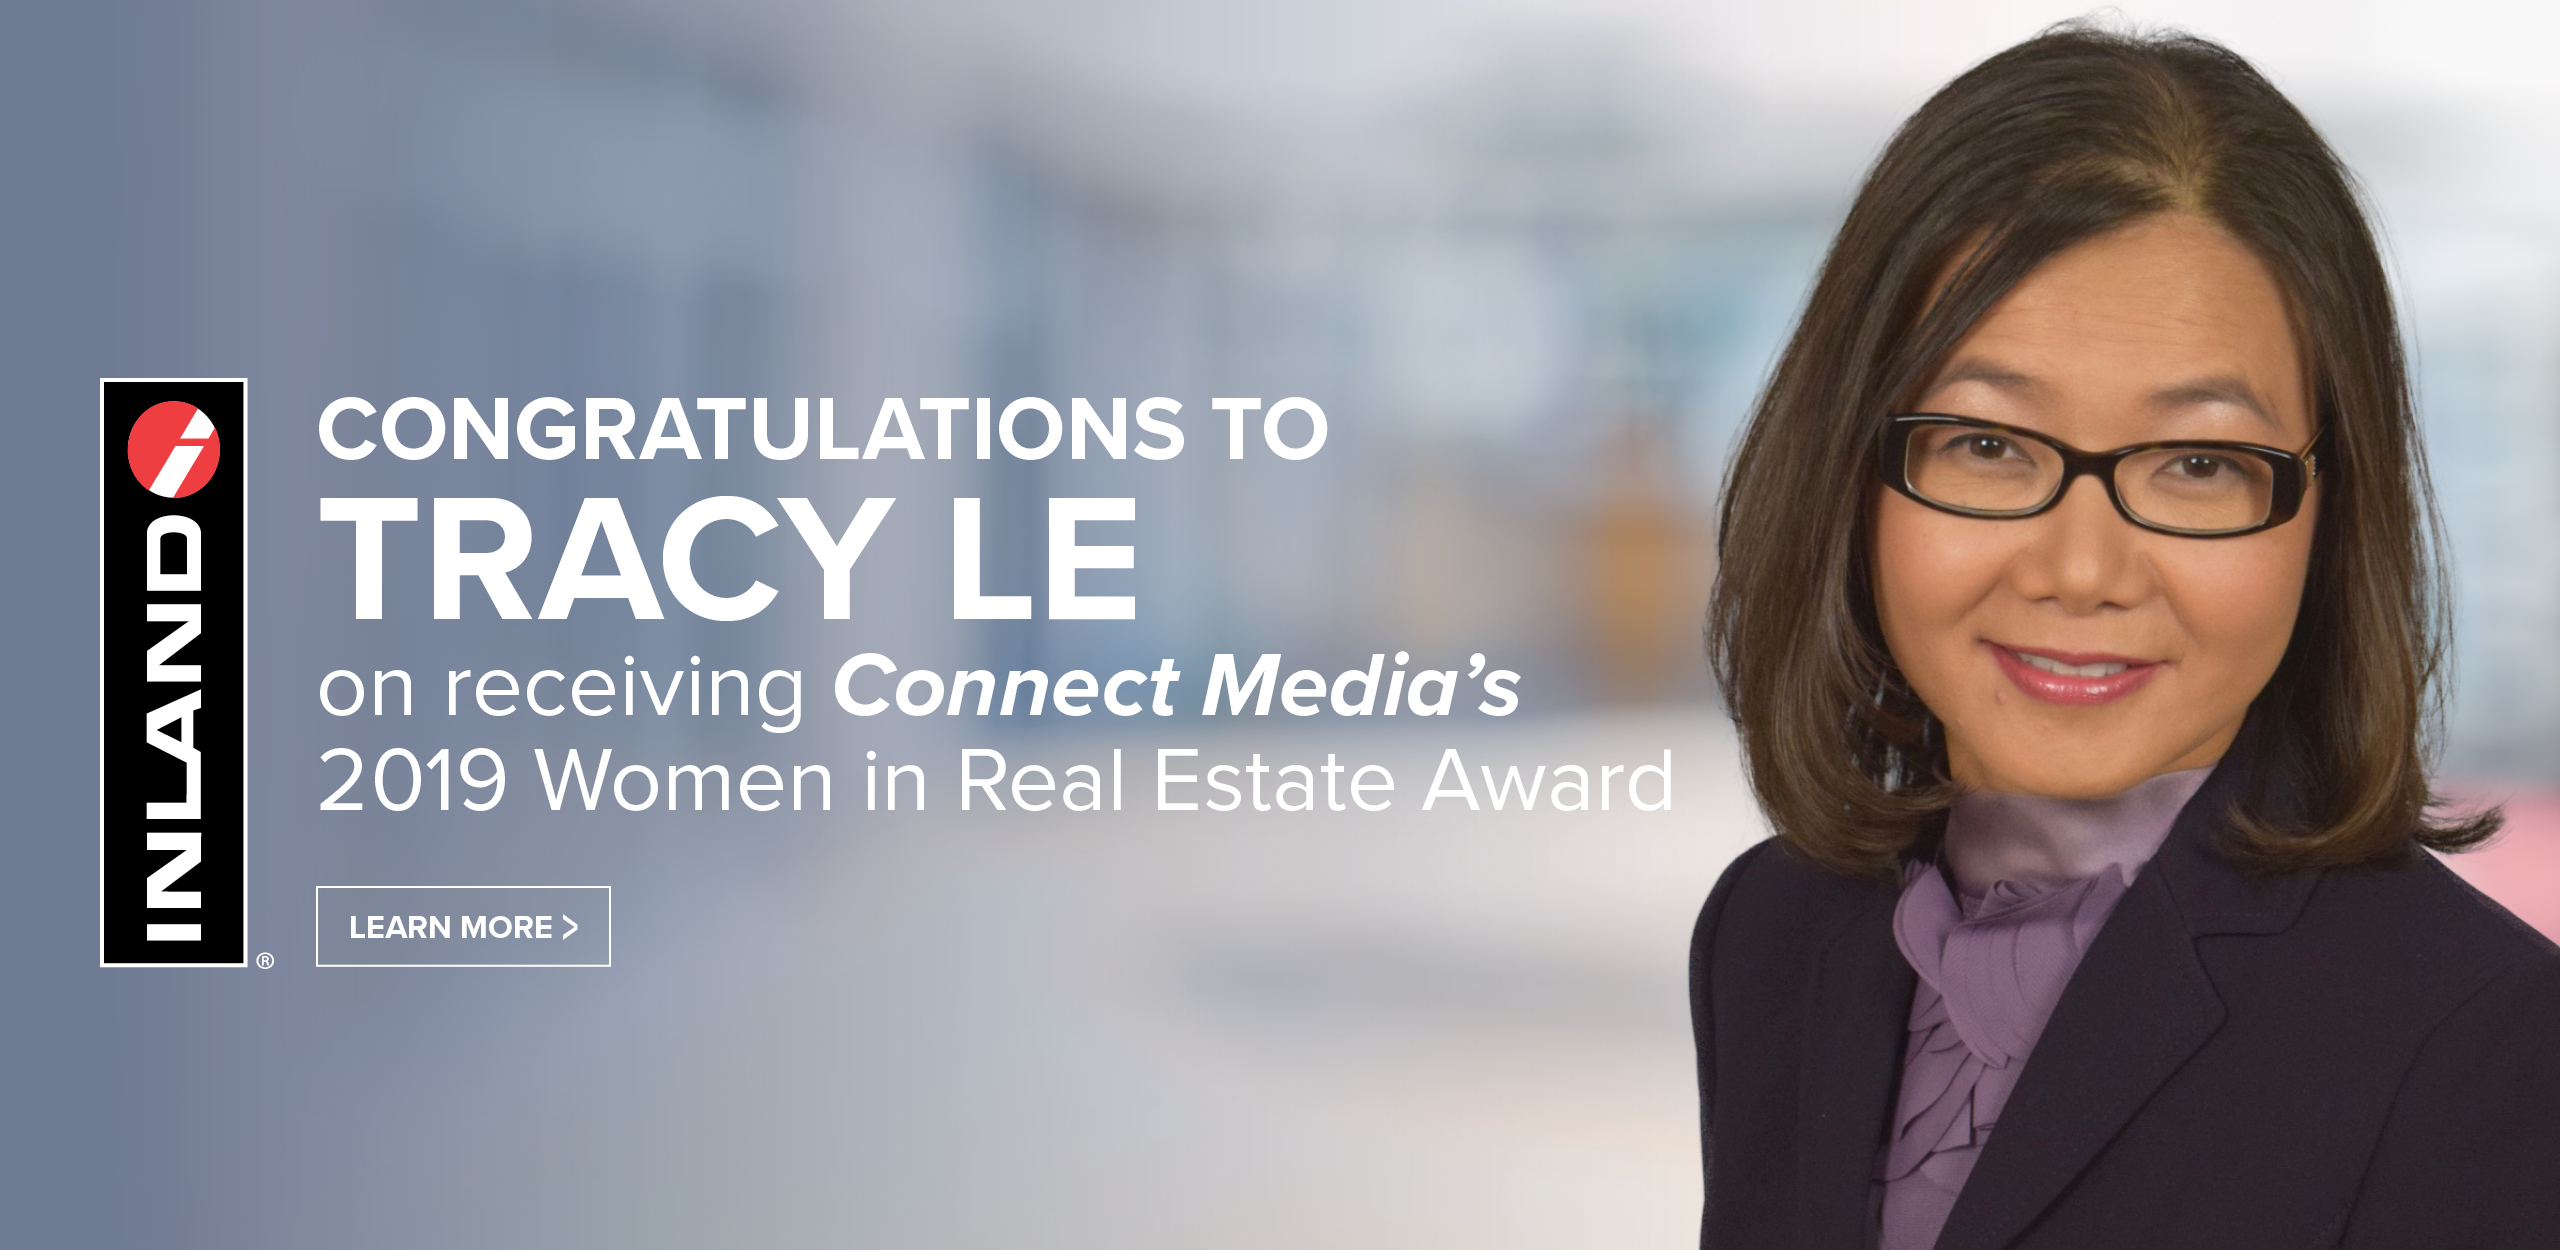 Tracy Le Connect Media Women in Real Estate Award